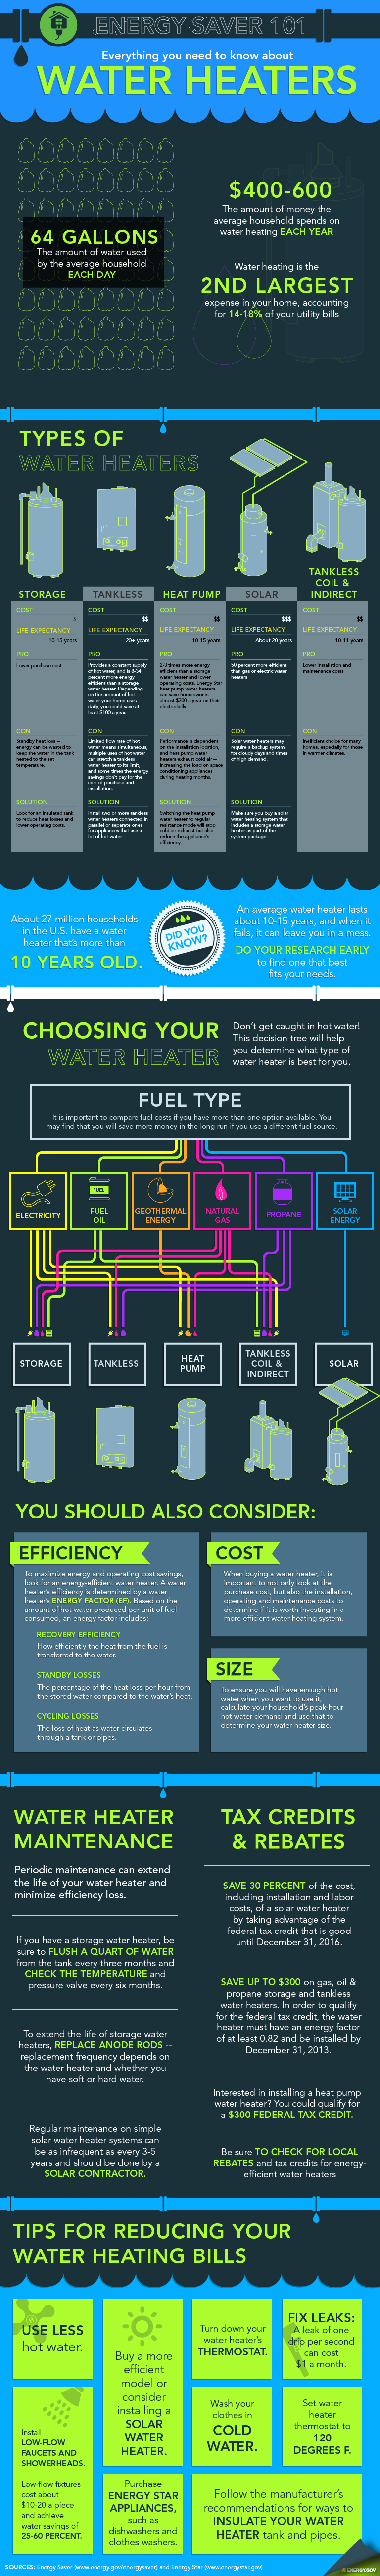 Our Energy Saver 101 infographic lays out the different types of water heaters on the market and will help you figure out how to select the best model for your home.    Infographic by Sarah Gerrity, Energy Department.